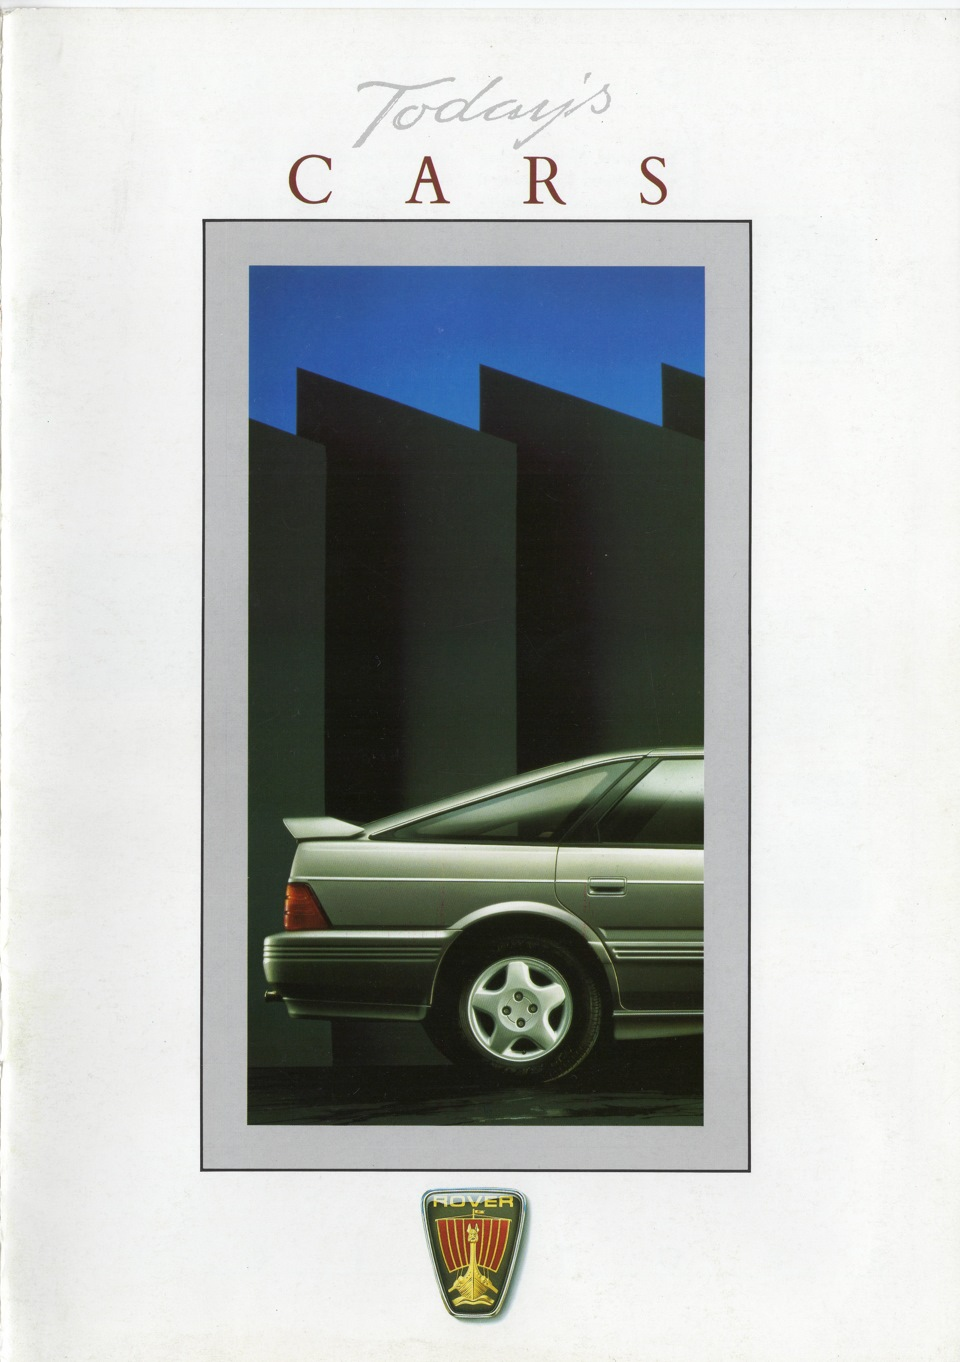 Rovers art of advertising 1987 Todays Cars the Rover 800